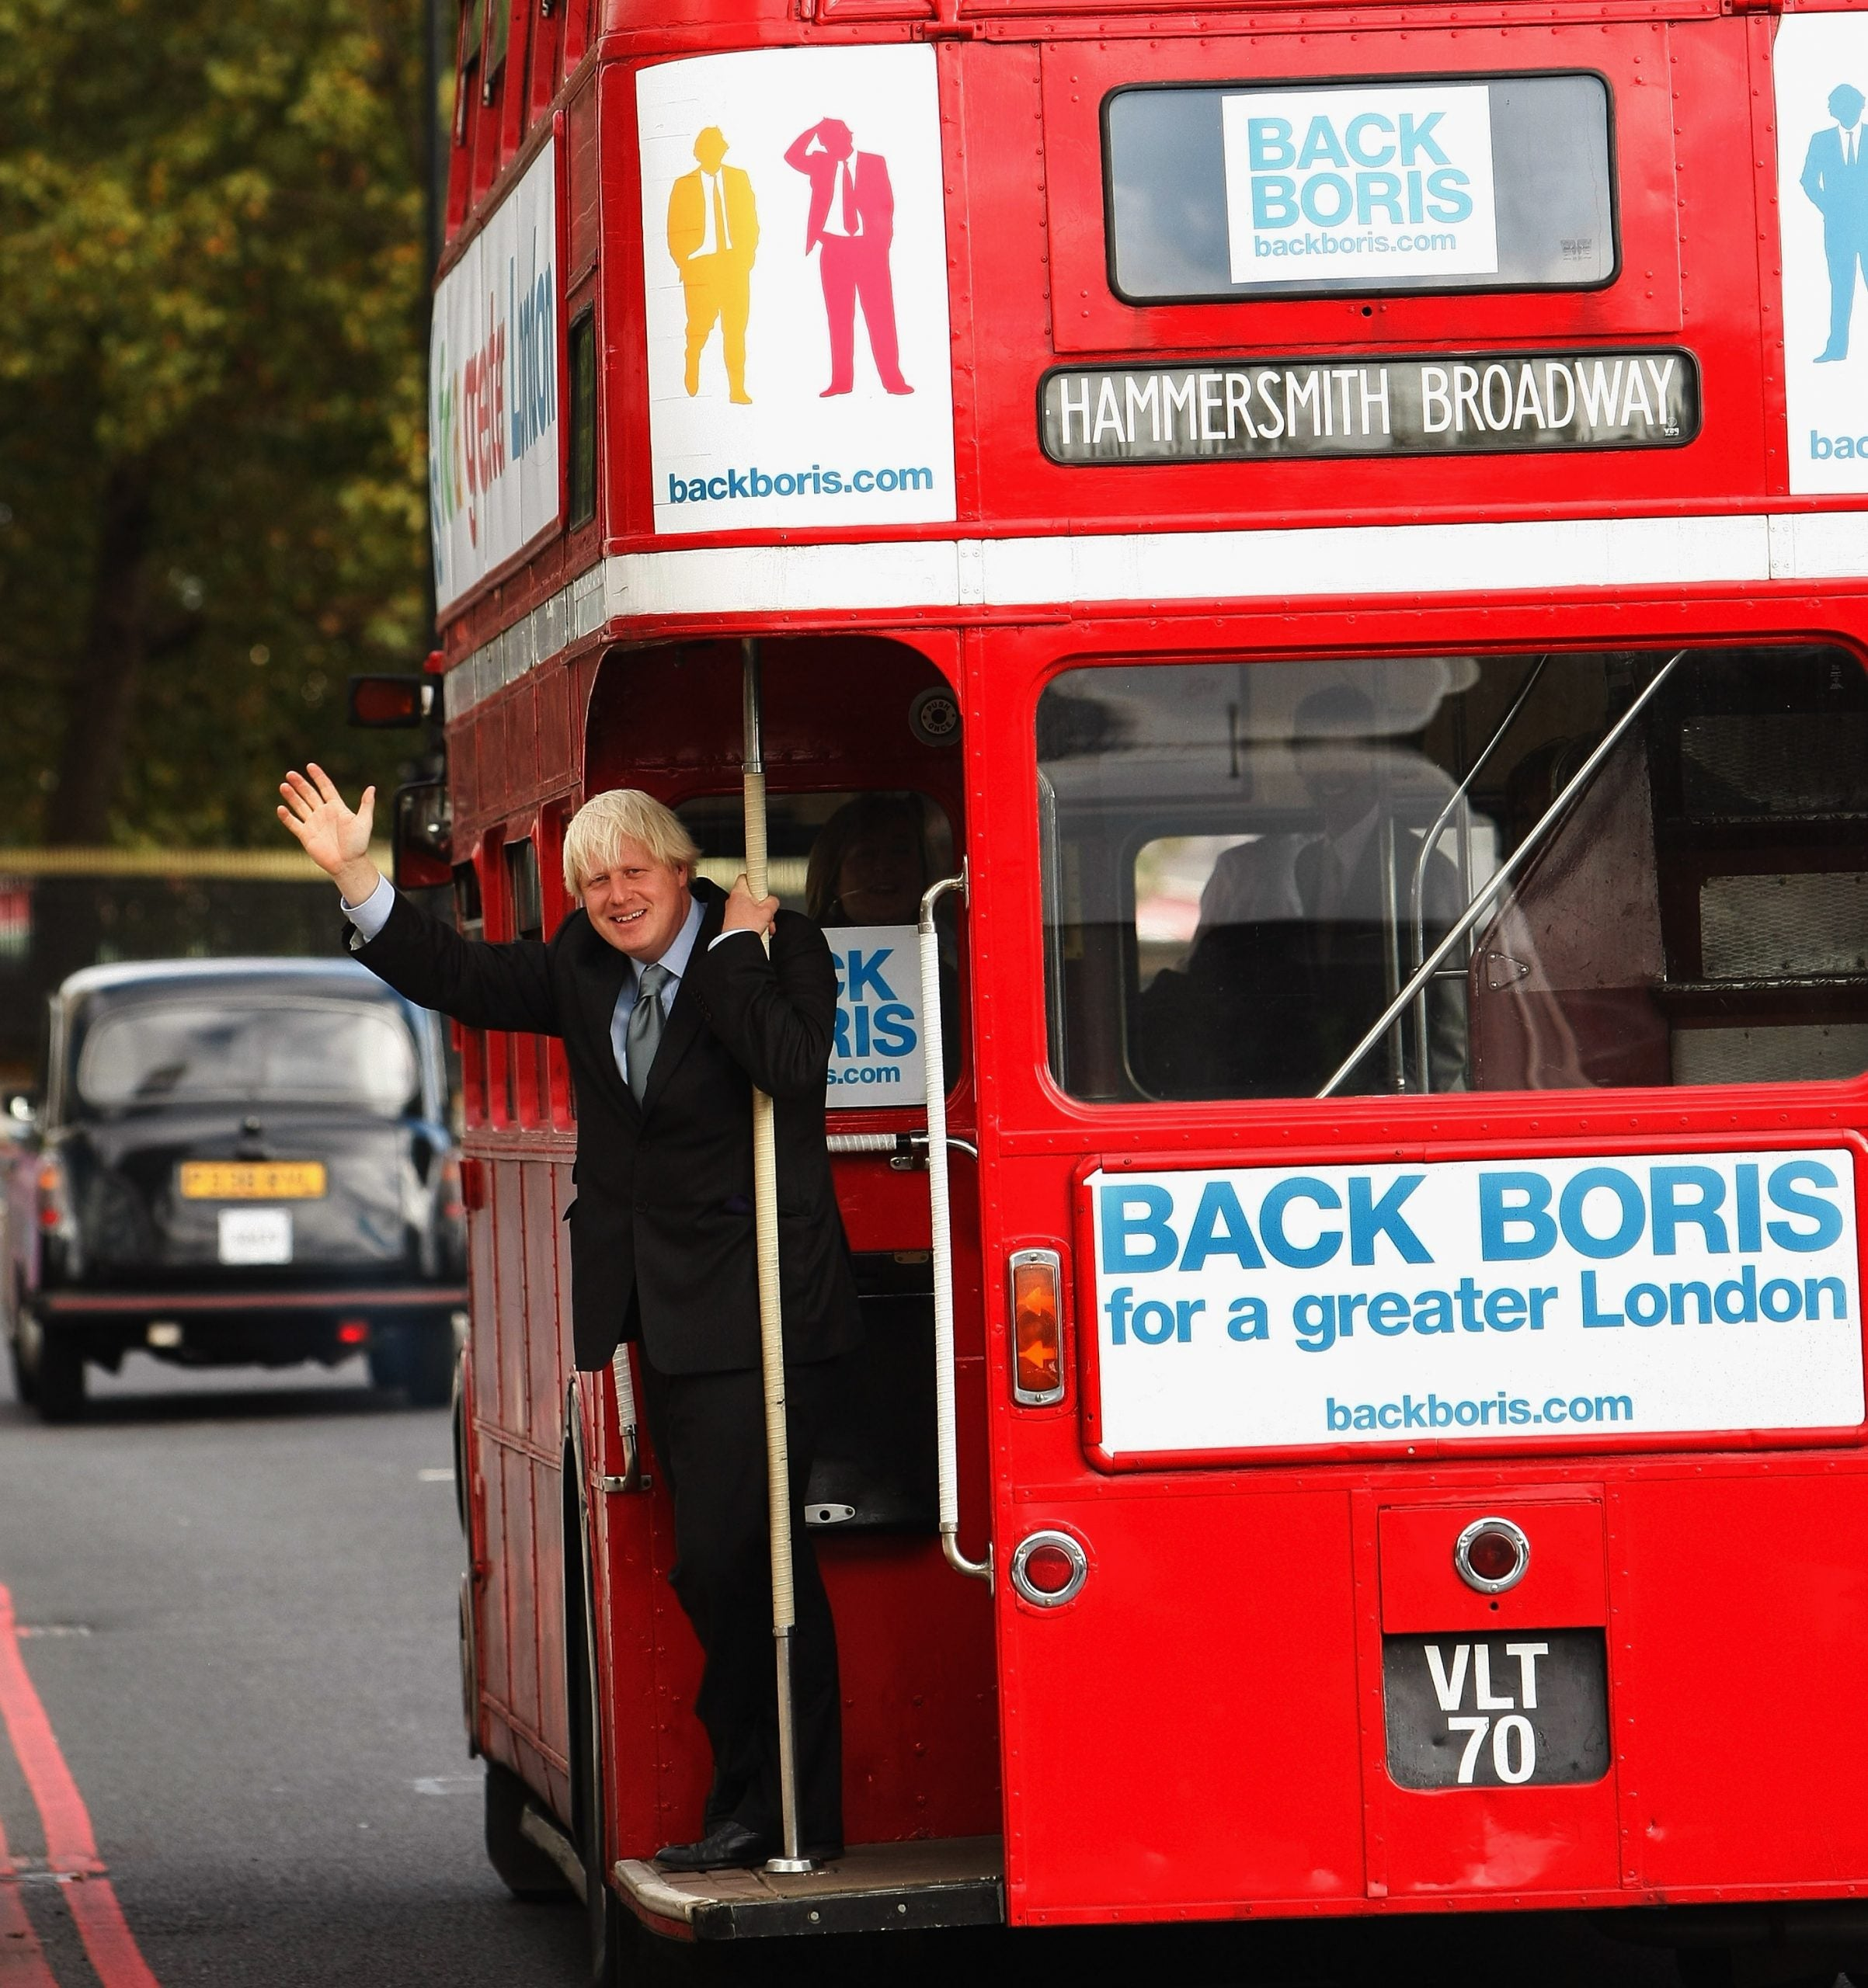 Boris Johnson yearns for the time when, as London mayor, he was popular. But those days are gone